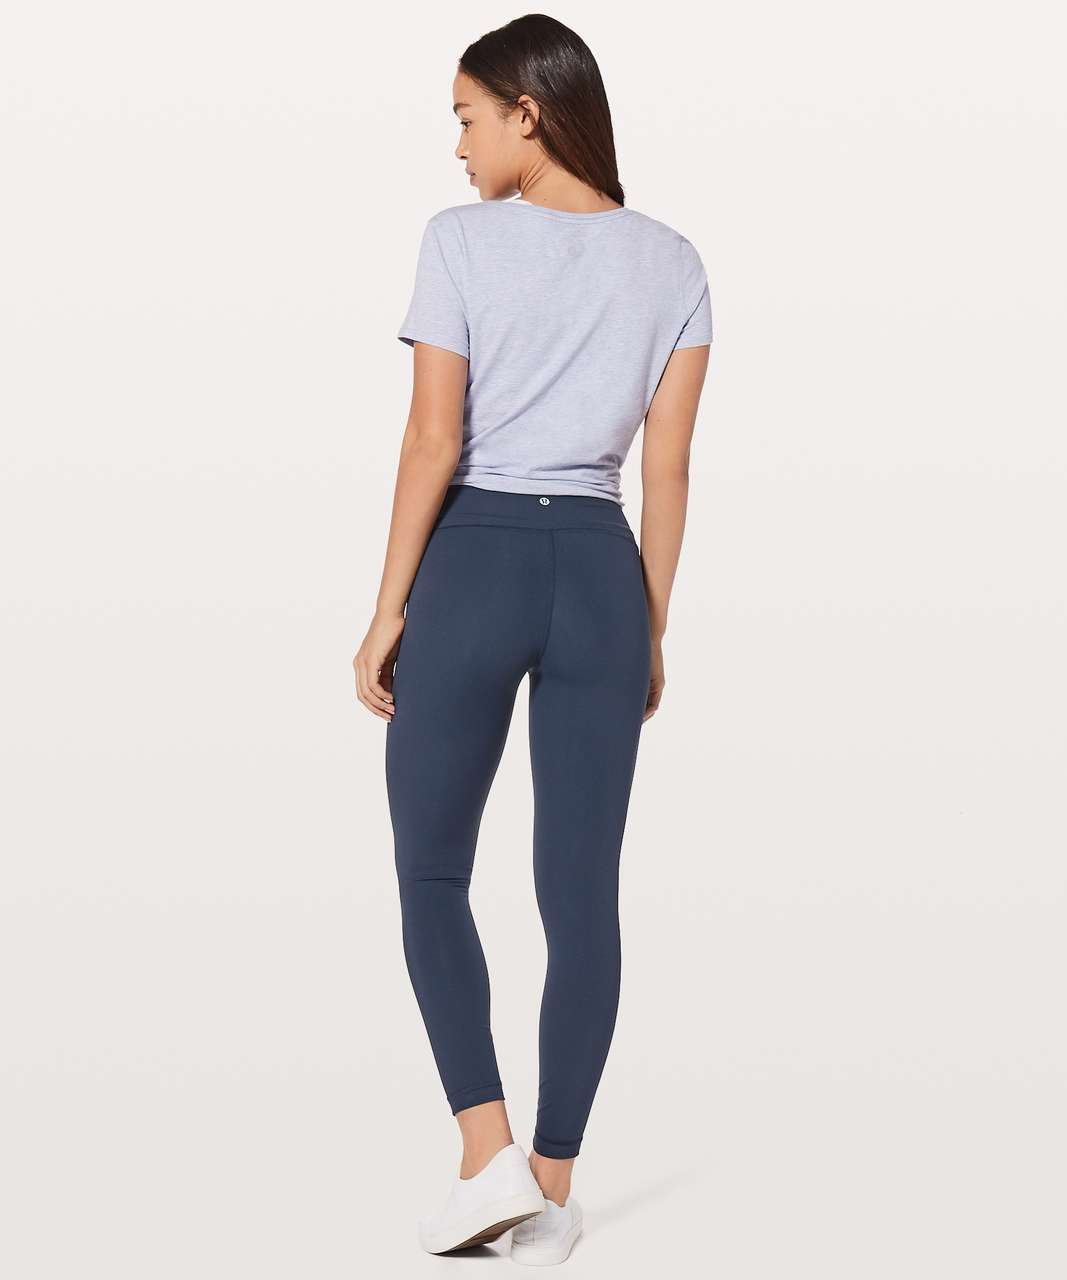 "Lululemon Wunder Under Hi-Rise 7/8 Tight 25"" - True Navy"